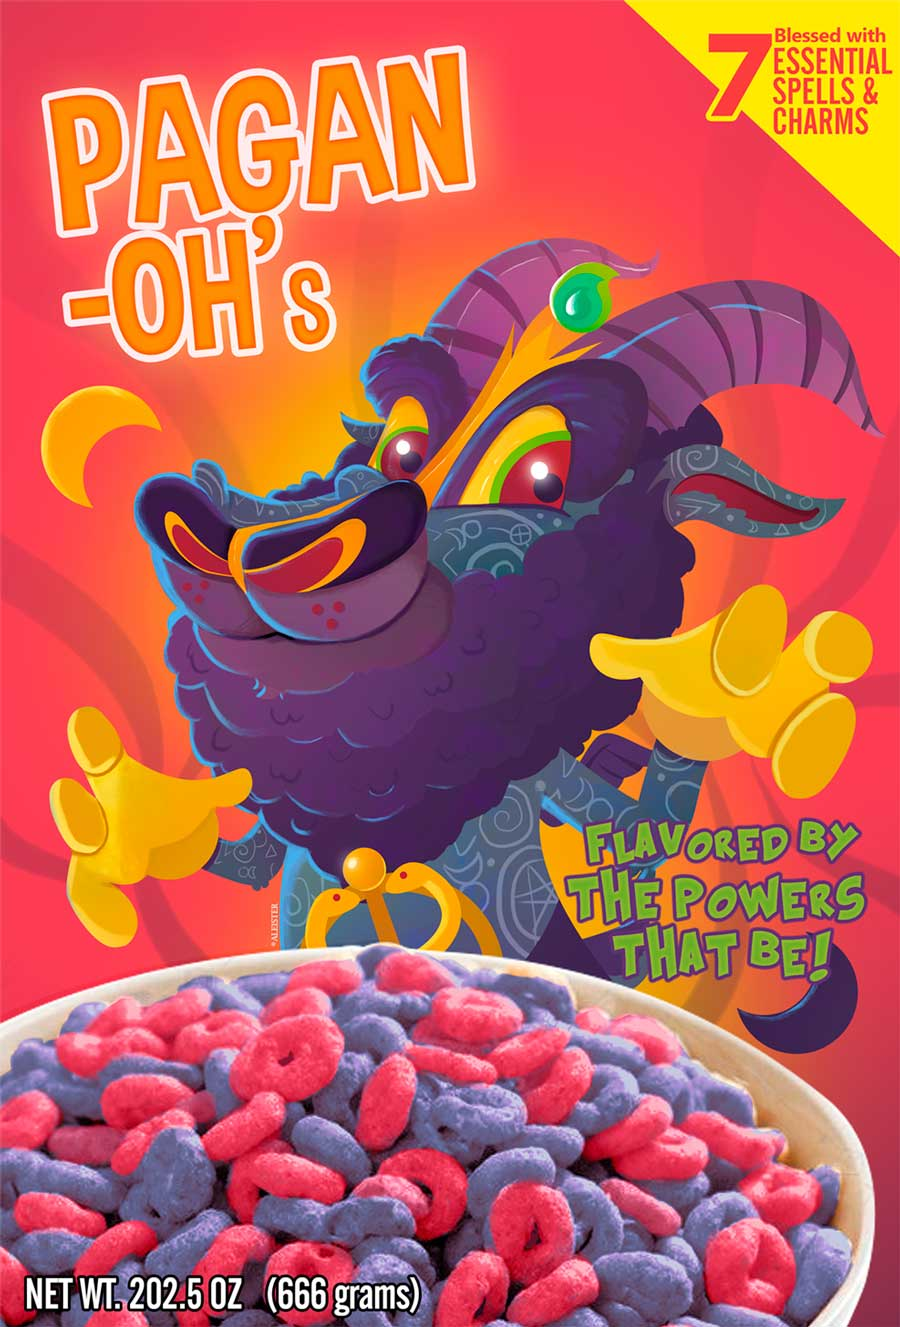 FElvast - Pagan-ohs cereal box